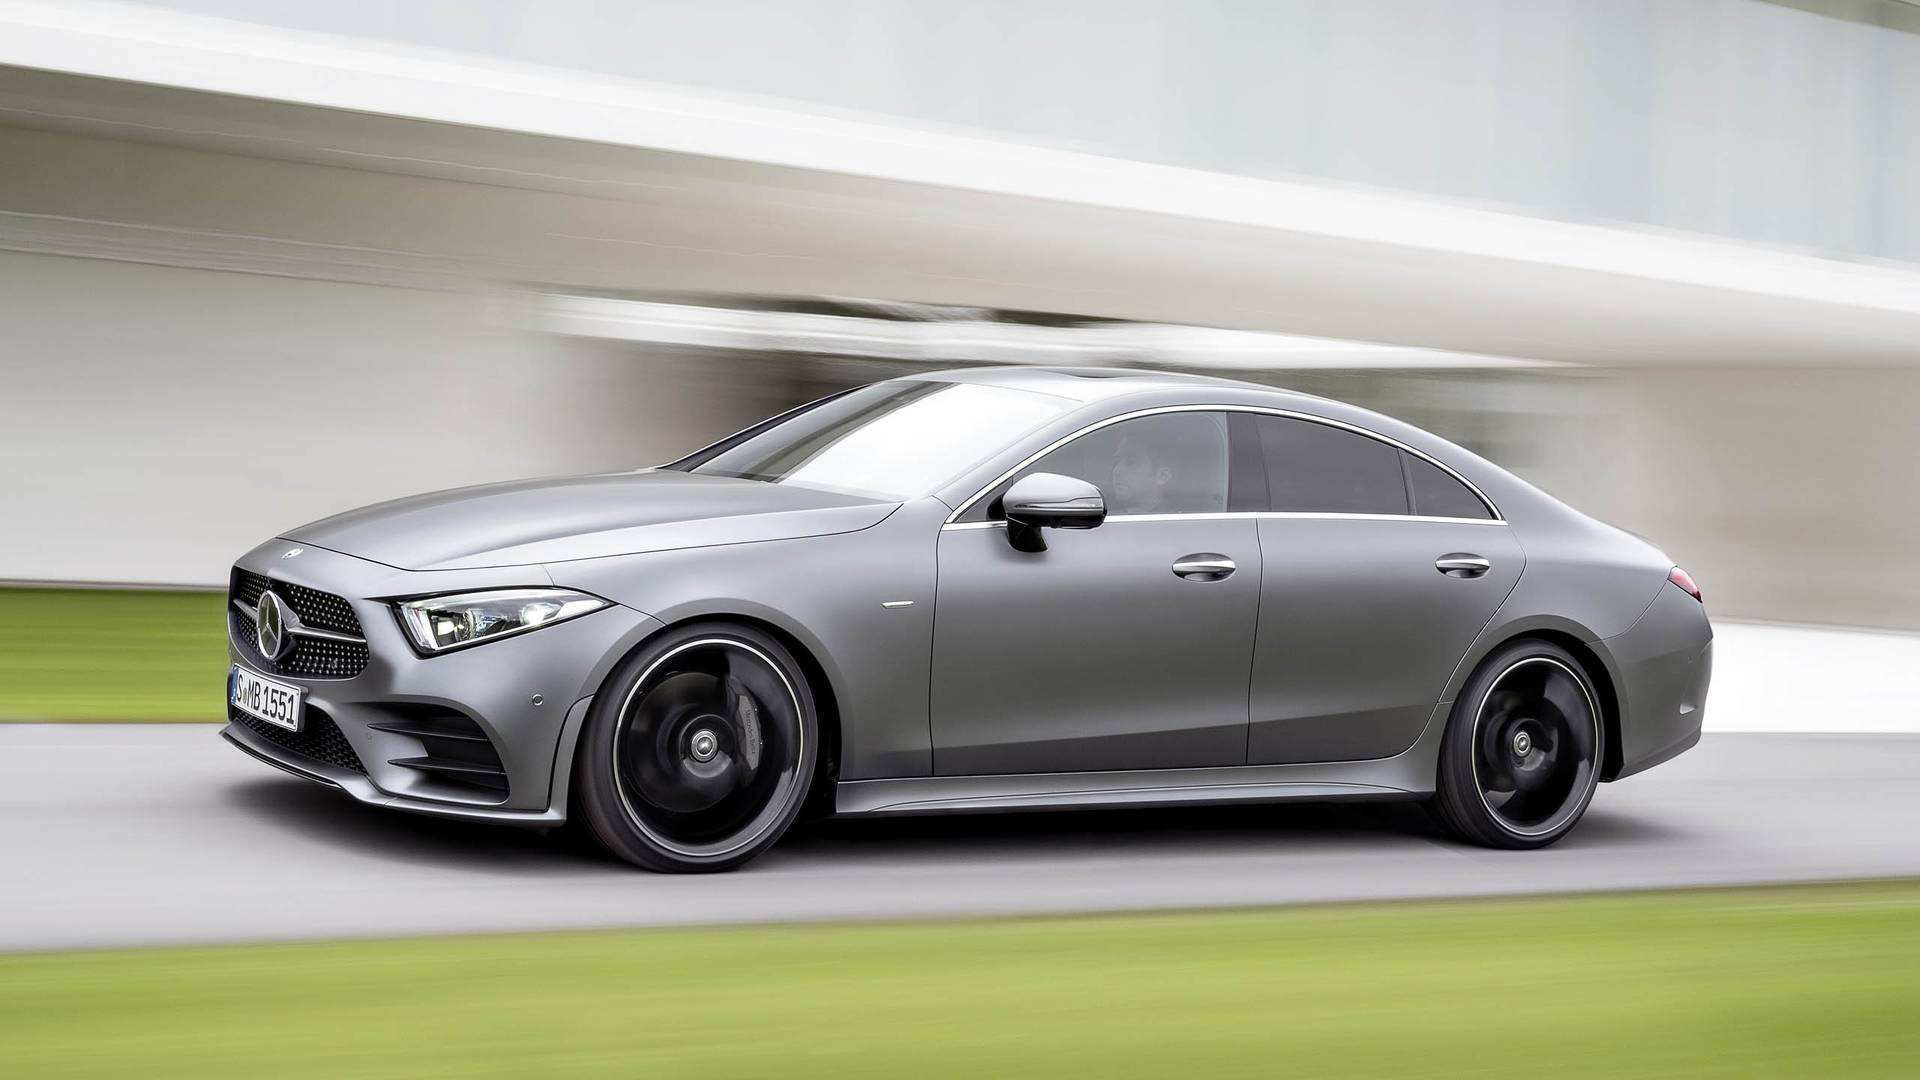 96 The 2019 Mercedes Cls Class Price Design And Review